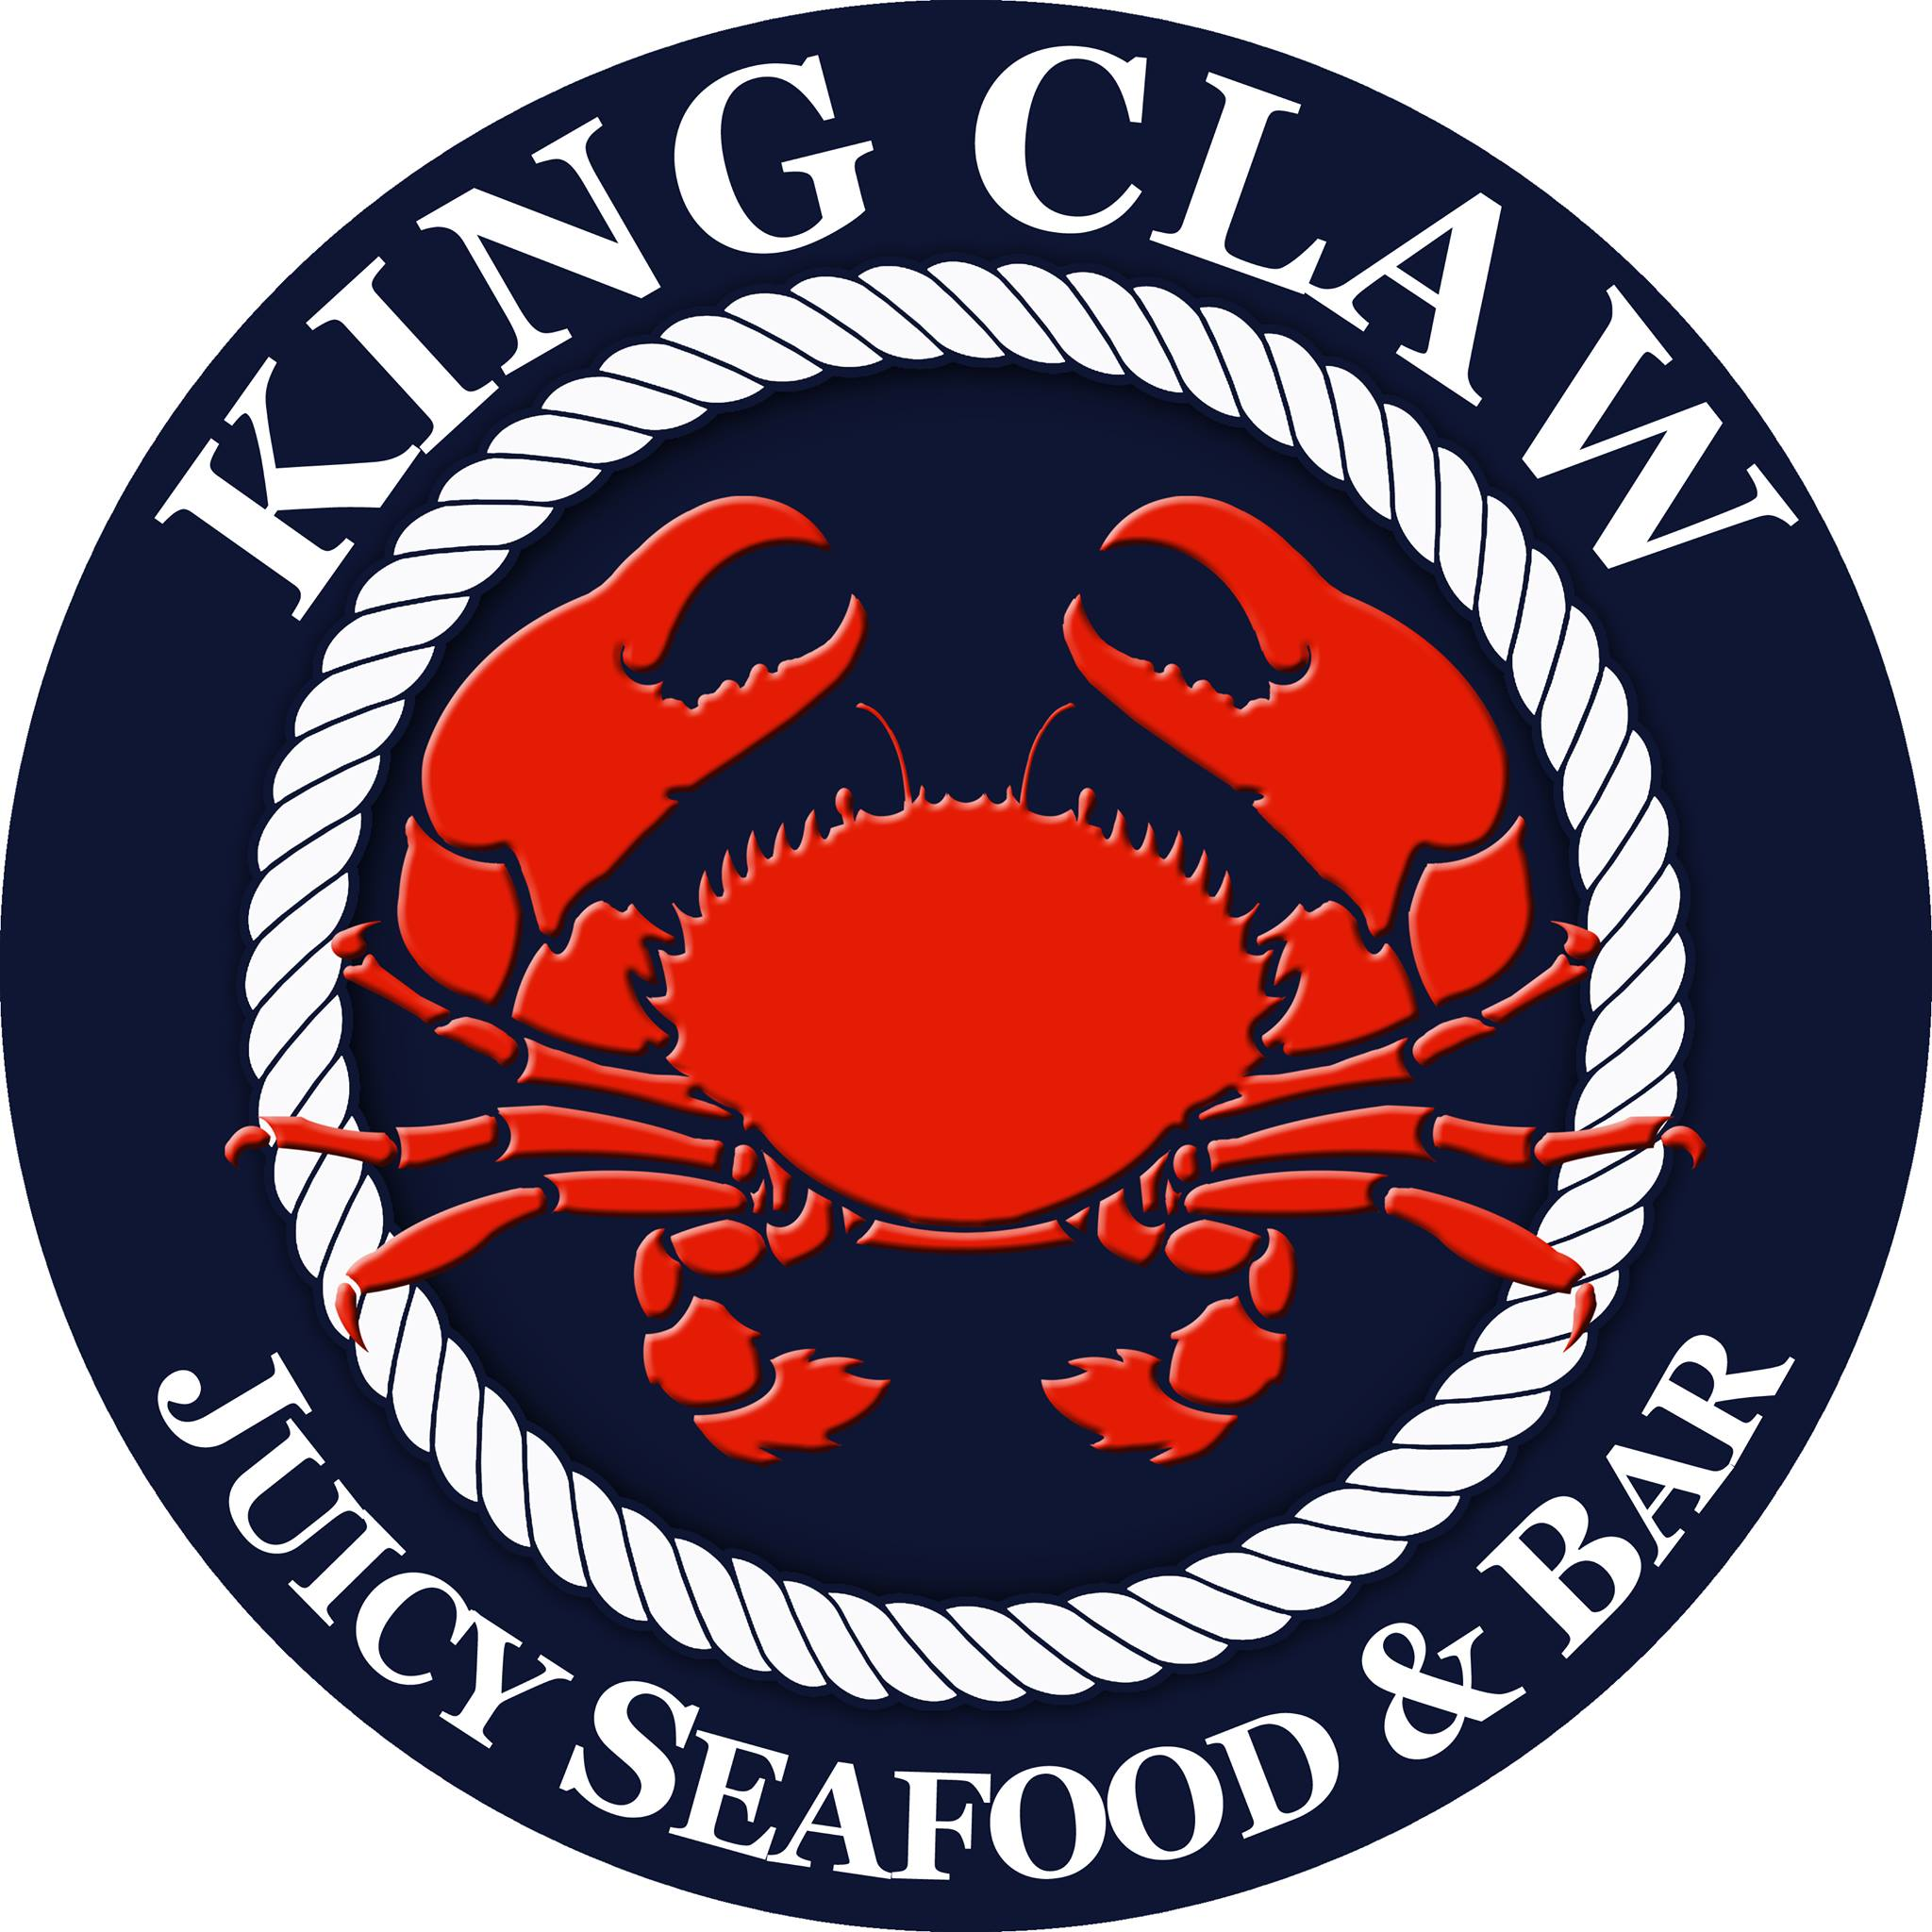 King Claw - Juicy Seafood & Bar